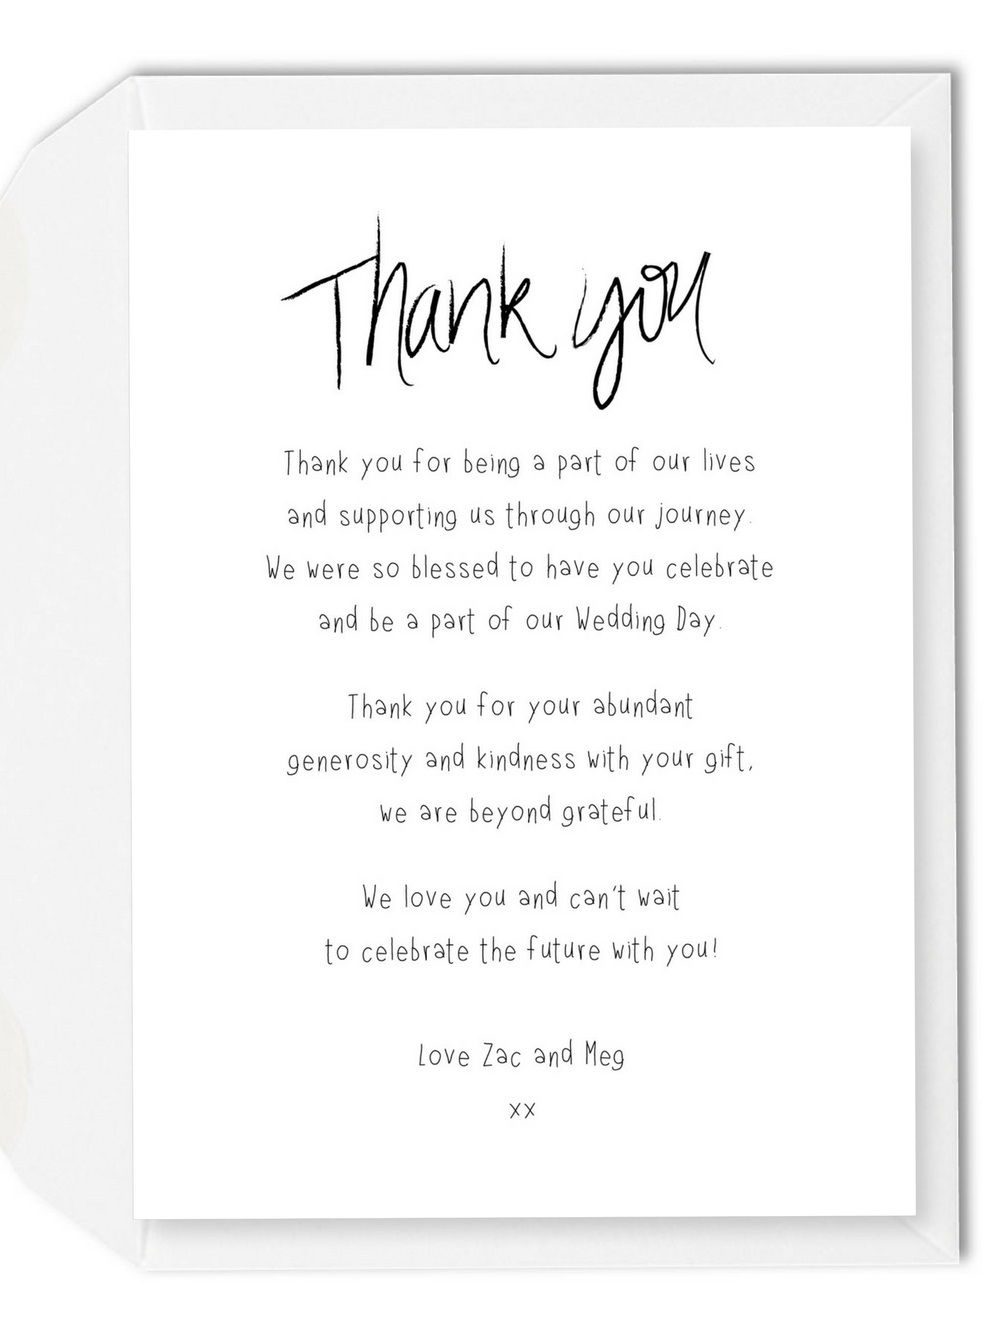 002 Imposing Wedding Thank You Note Template Picture  Money Sample Wording Bridal Shower GiftFull